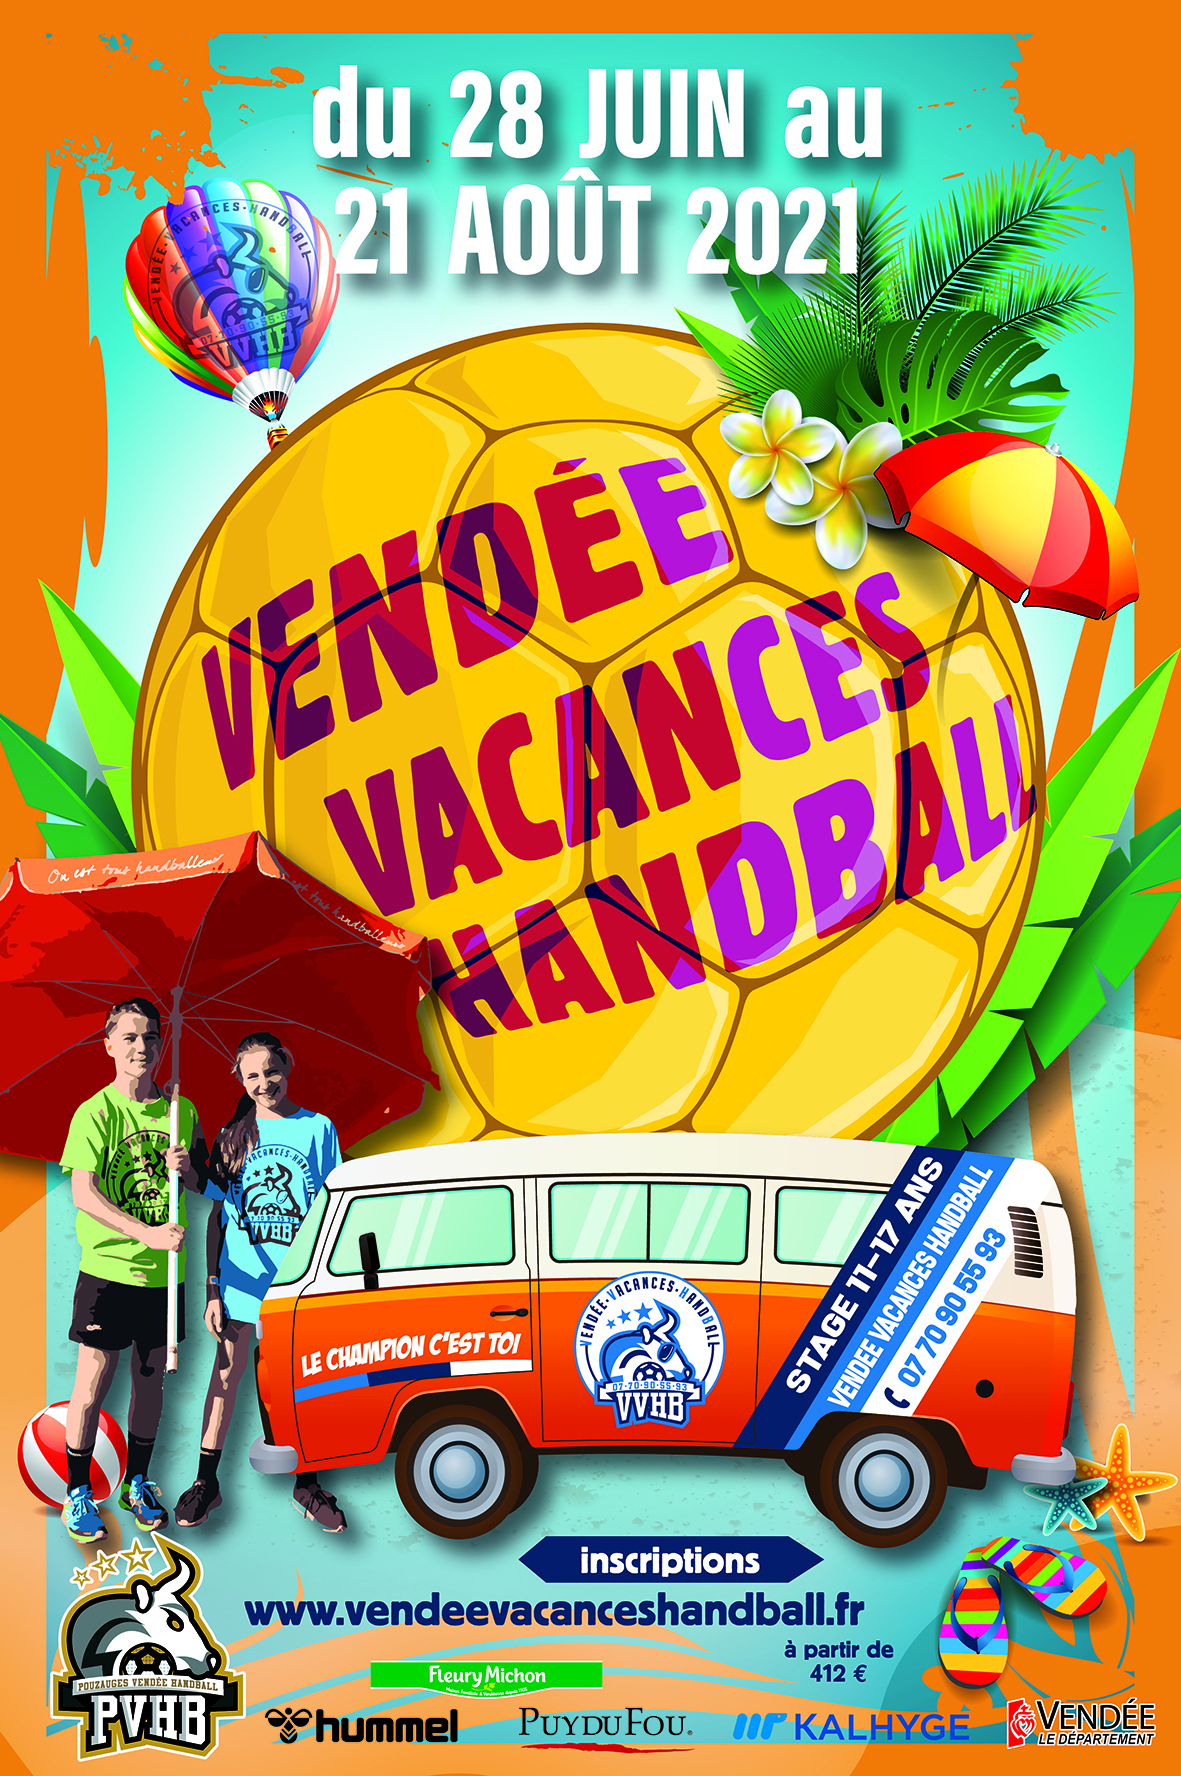 Affiche du stage vendee vacances handball